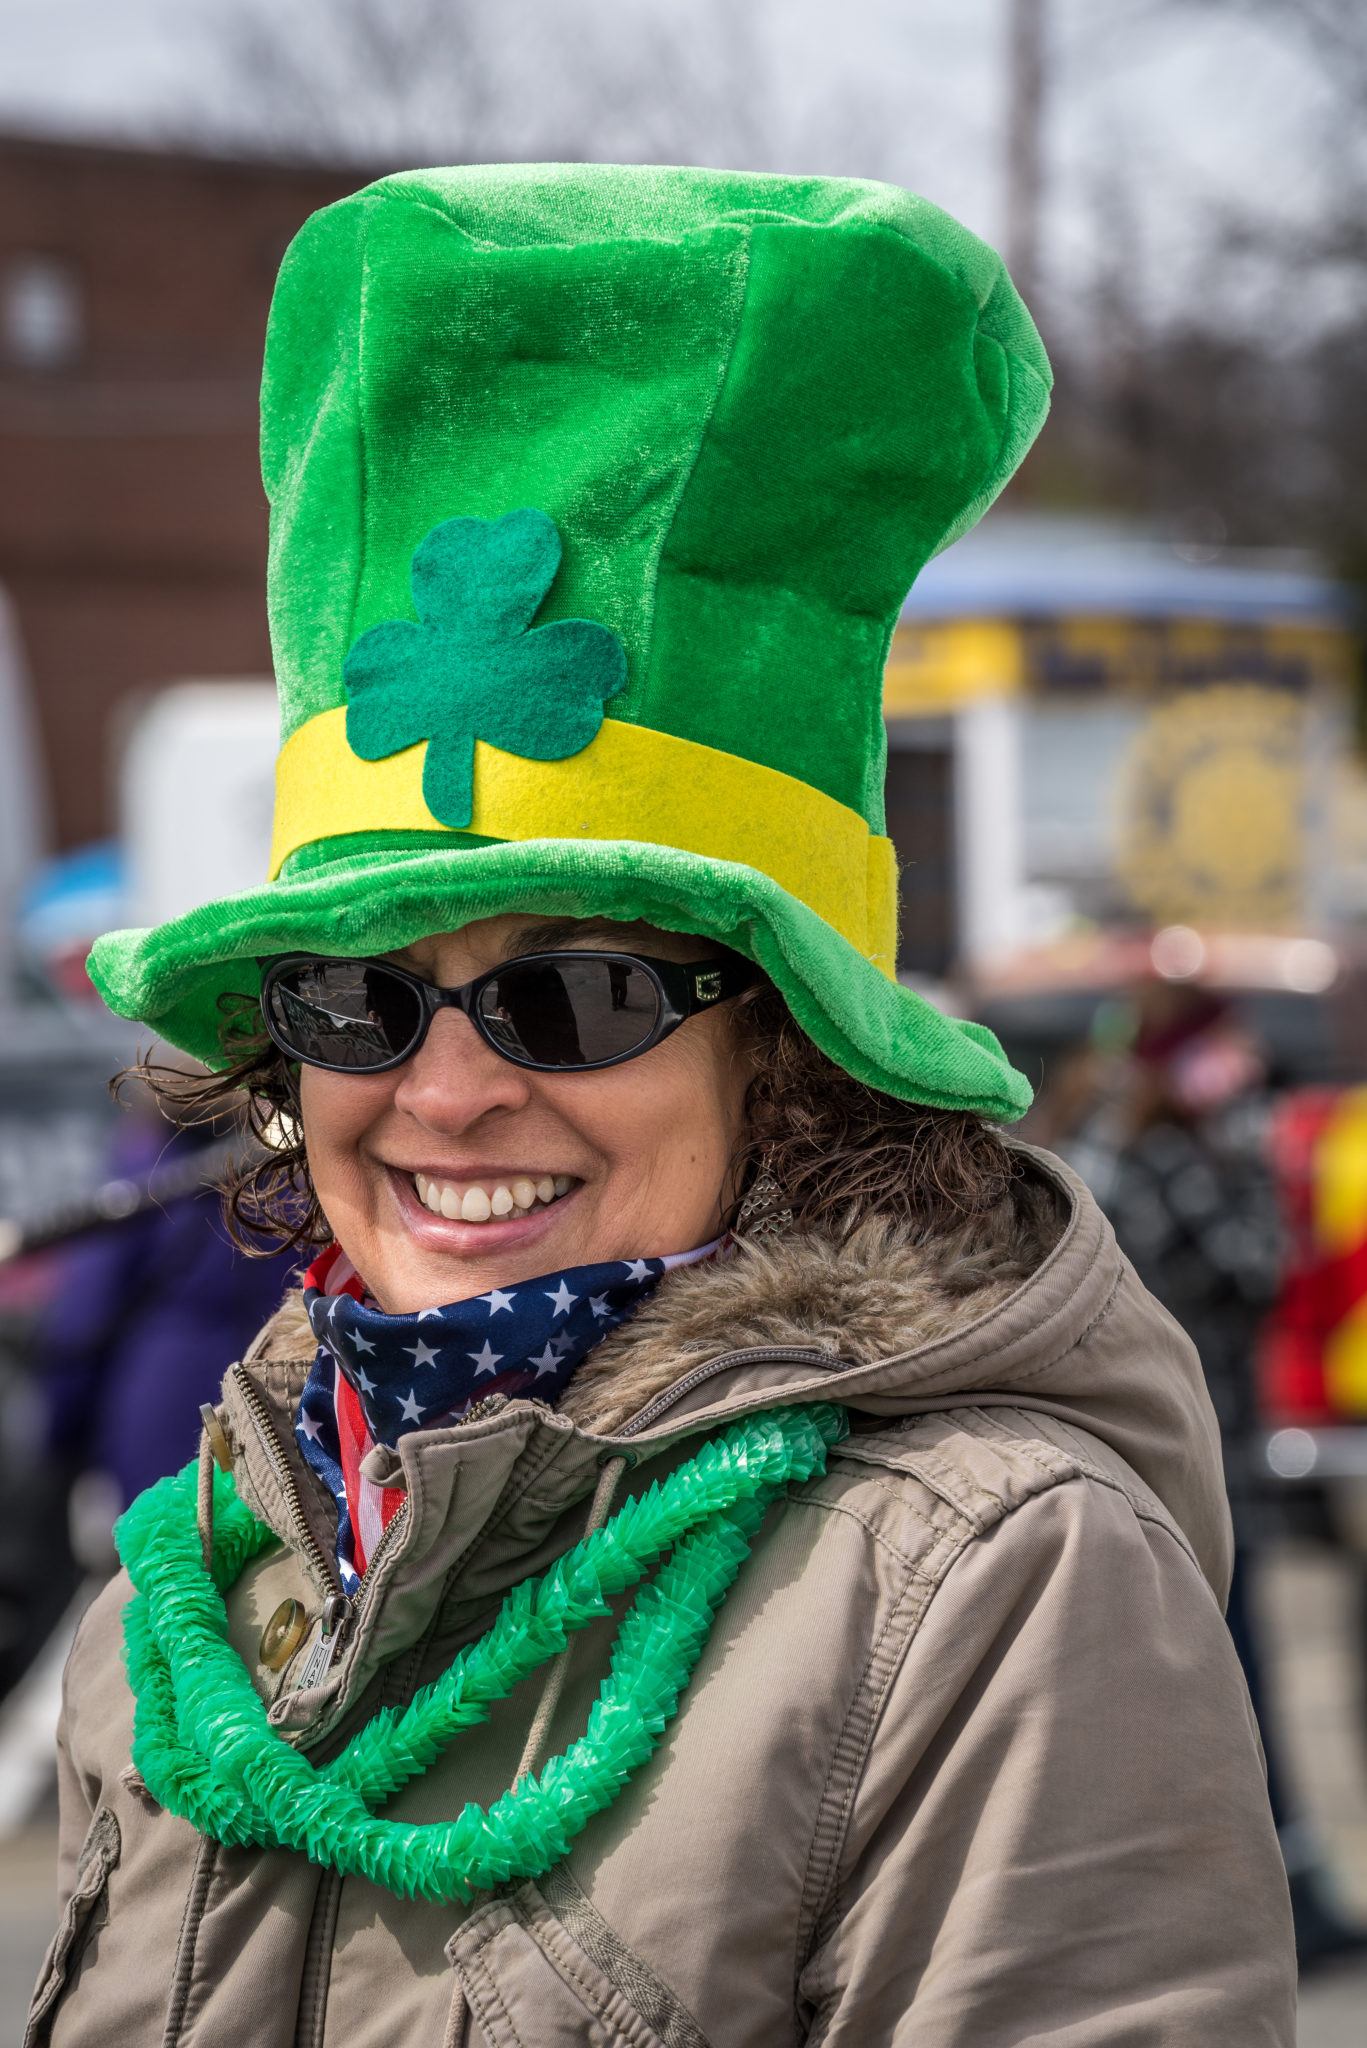 Woman at St. Patricks day parade in tall green har